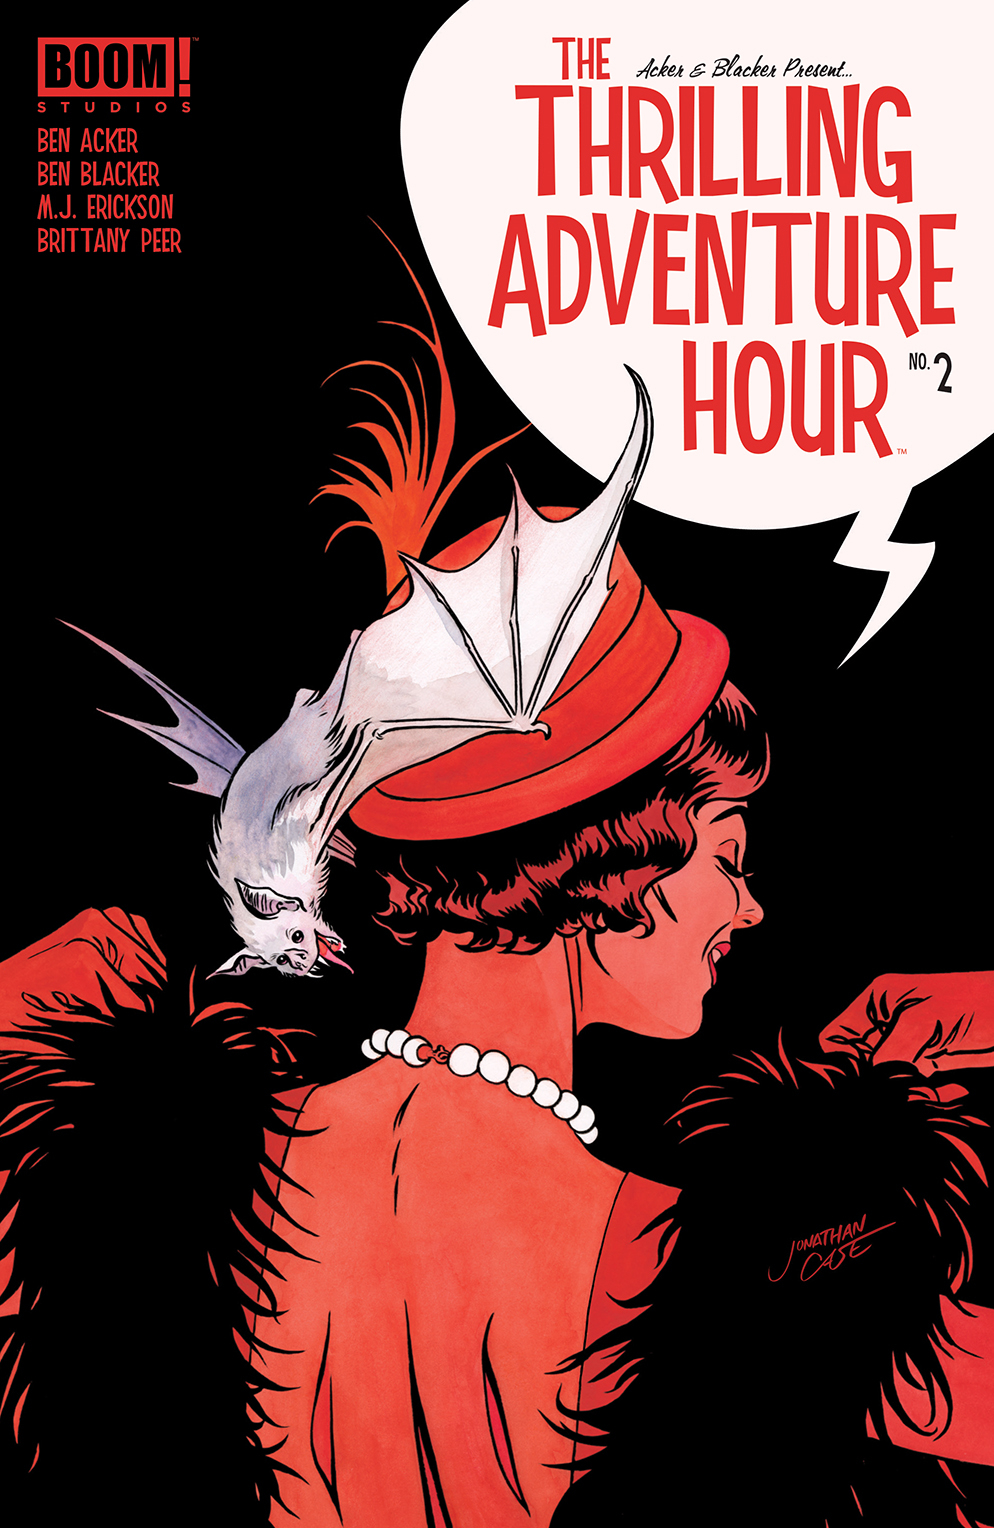 THRILLING ADVENTURE HOUR #2 (OF 4) CVR A CASE